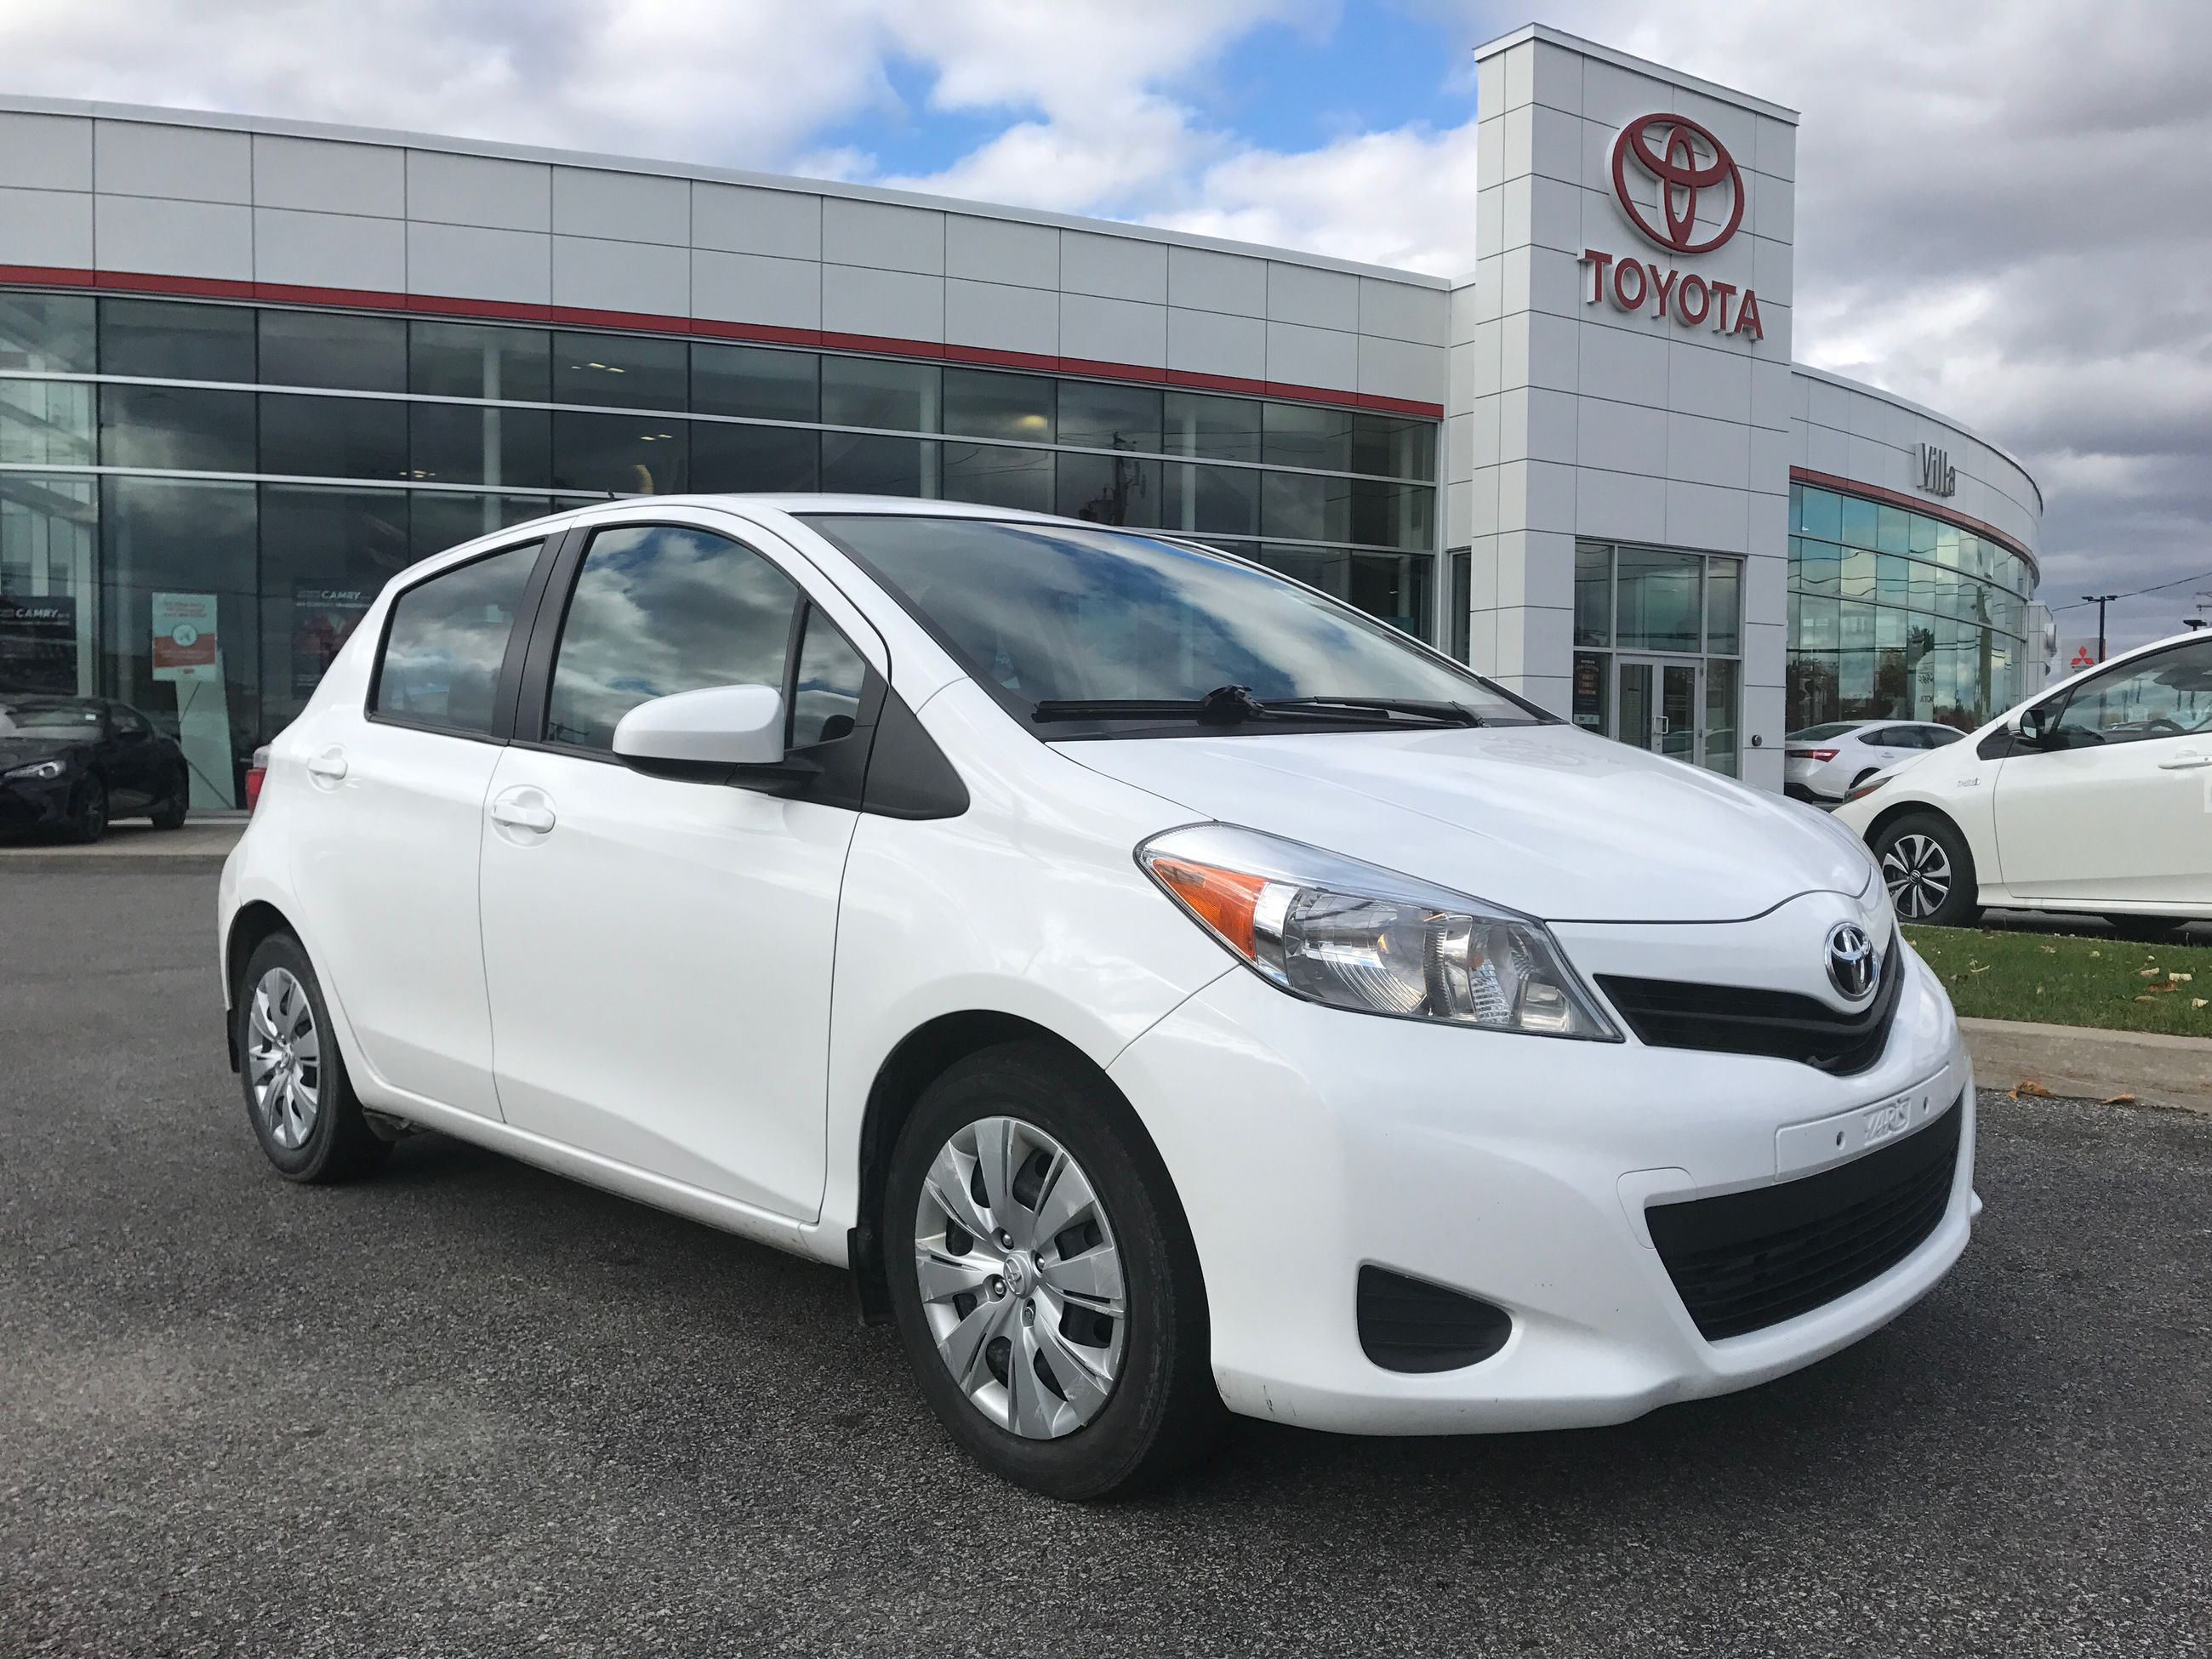 2014 toyota yaris le d 39 occasion gatineau inventaire d 39 occasion villa toyota gatineau. Black Bedroom Furniture Sets. Home Design Ideas